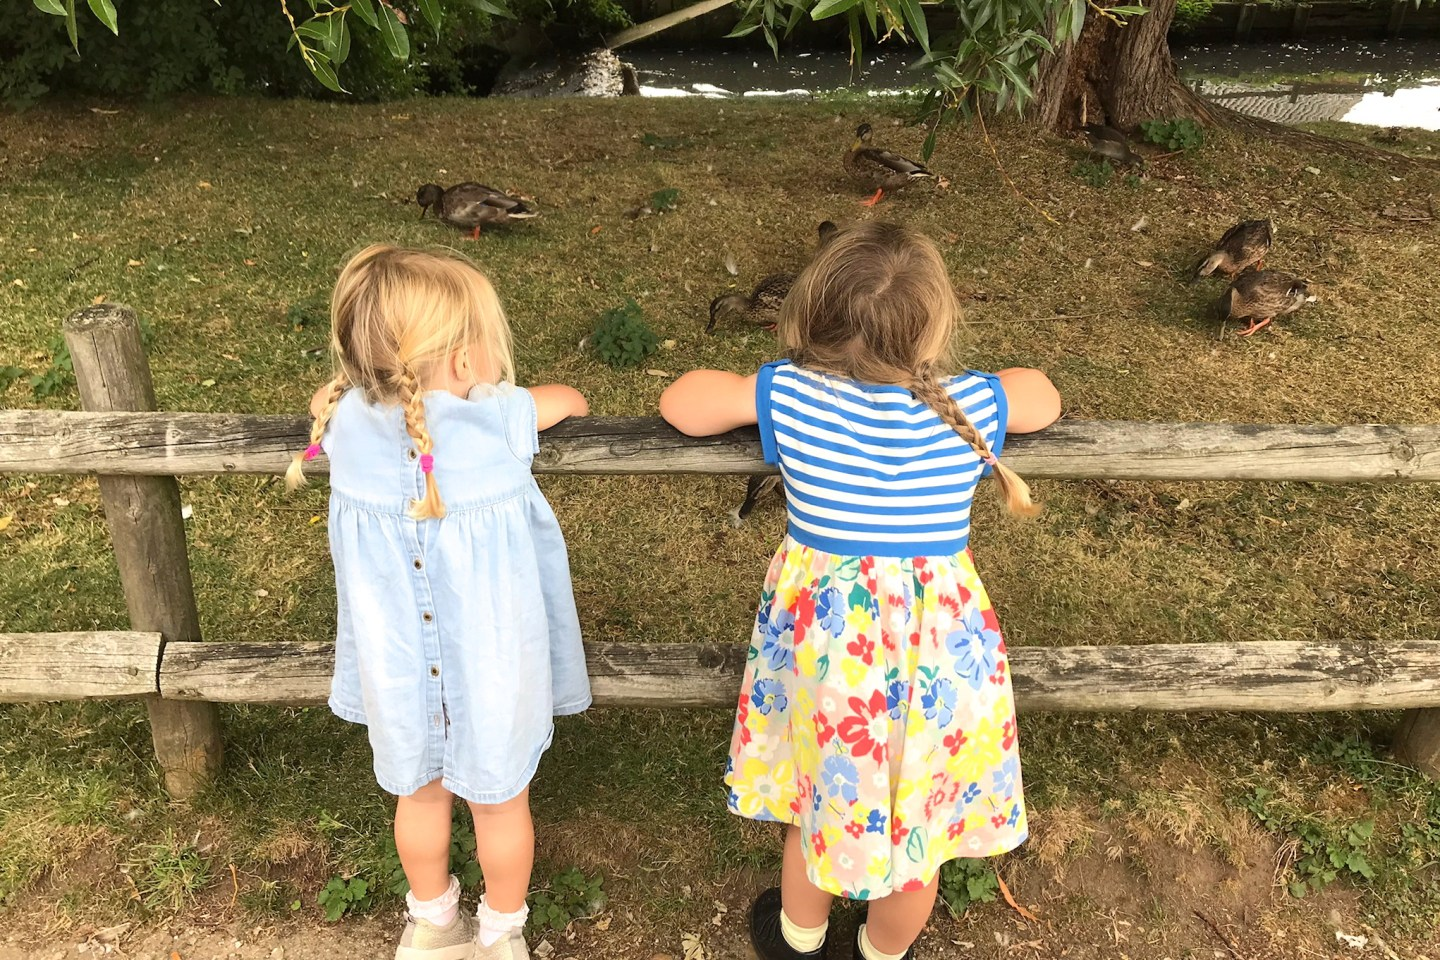 Two sisters from behind, leaning on a fence, looking at ducks